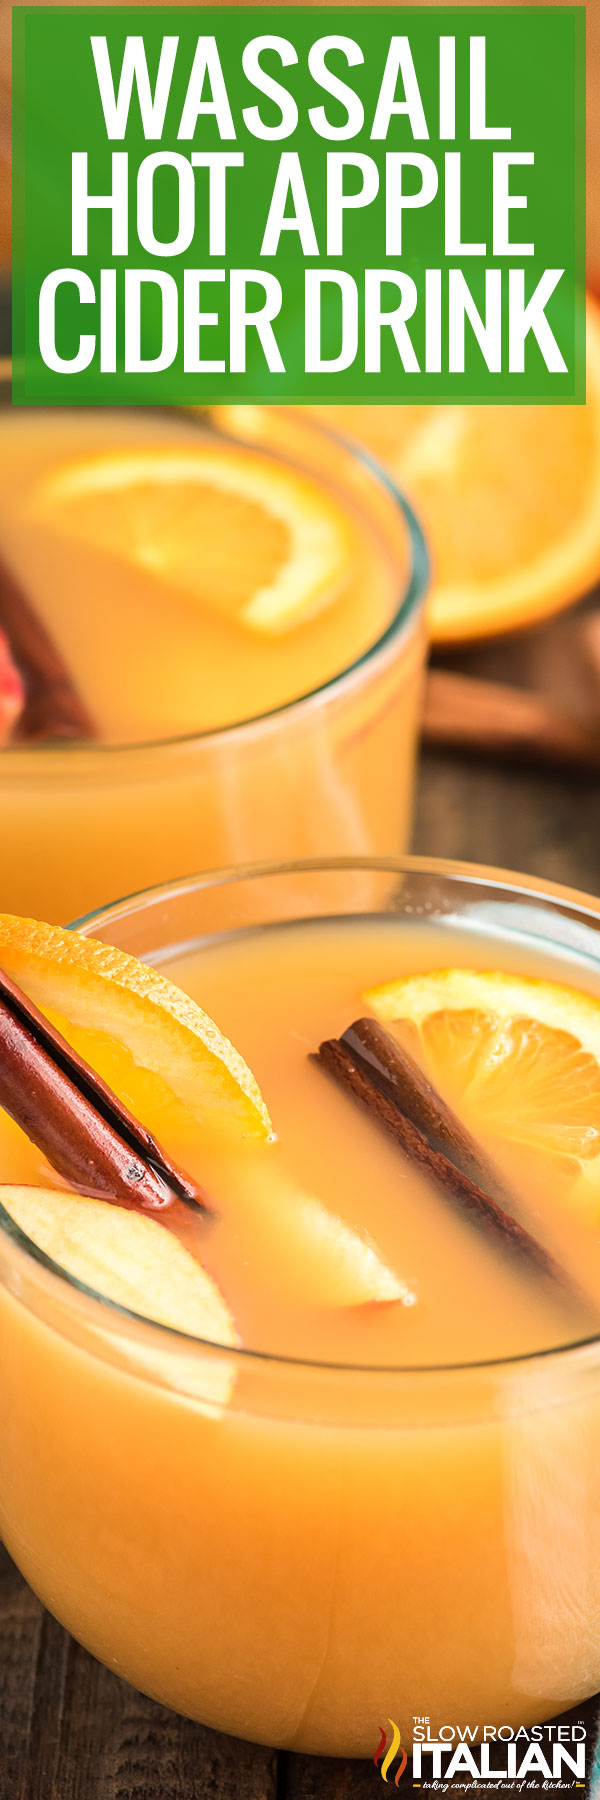 Title text (pictured in clear mugs): Wassail Hot Apple Cider Drink